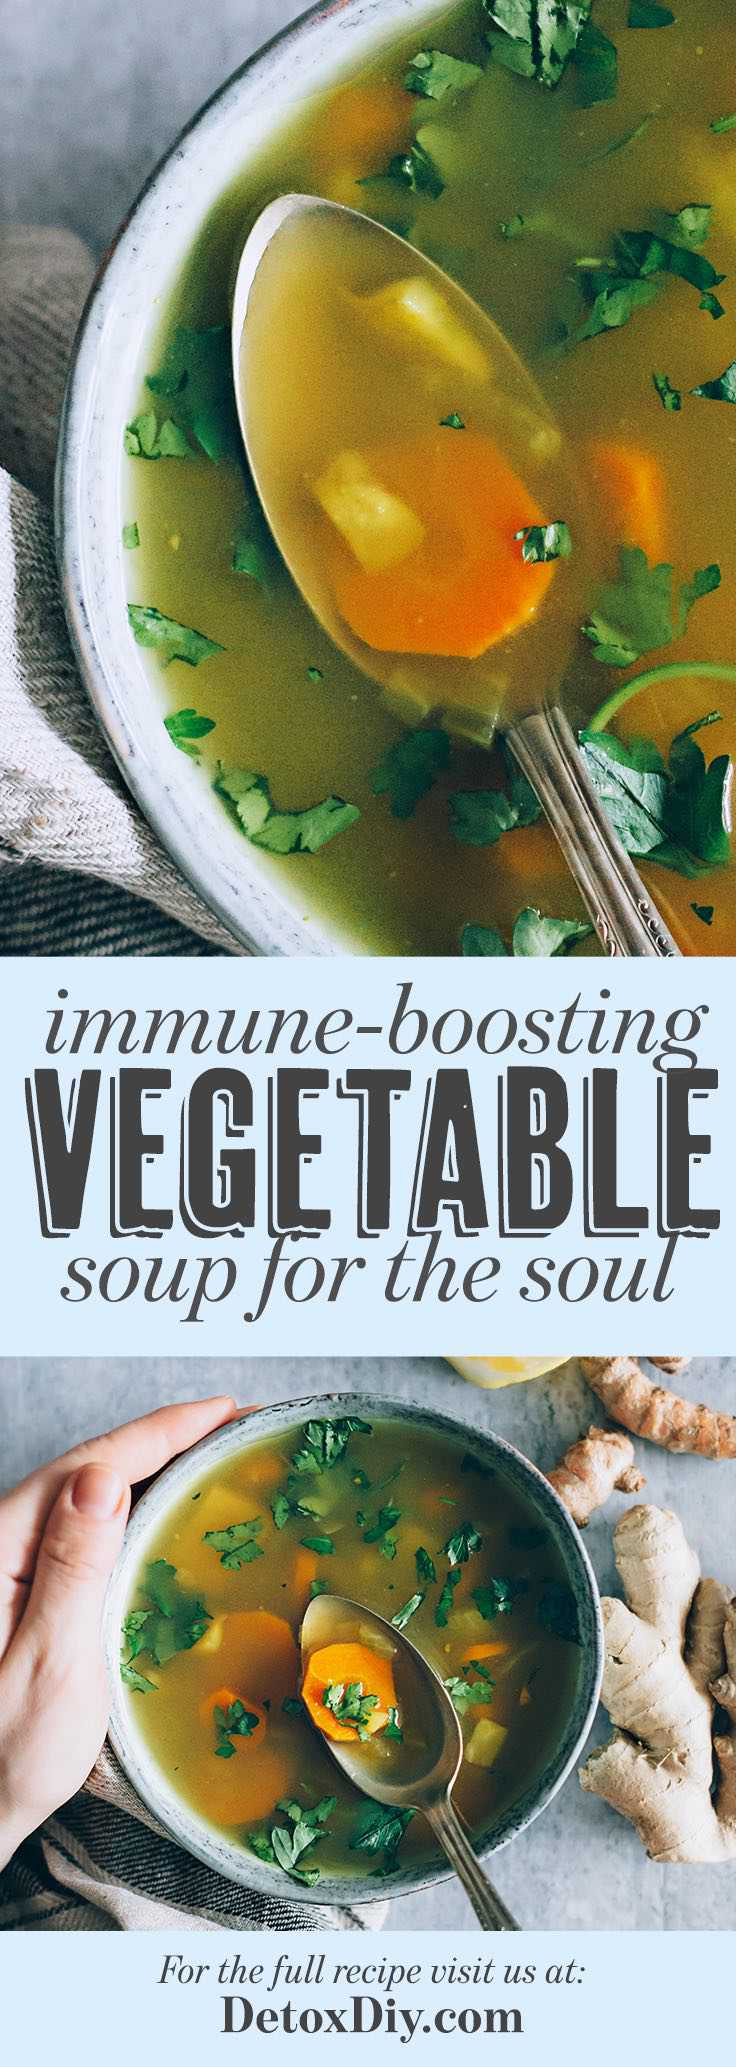 Immune-Boosting Vegetable Soup for the Soul